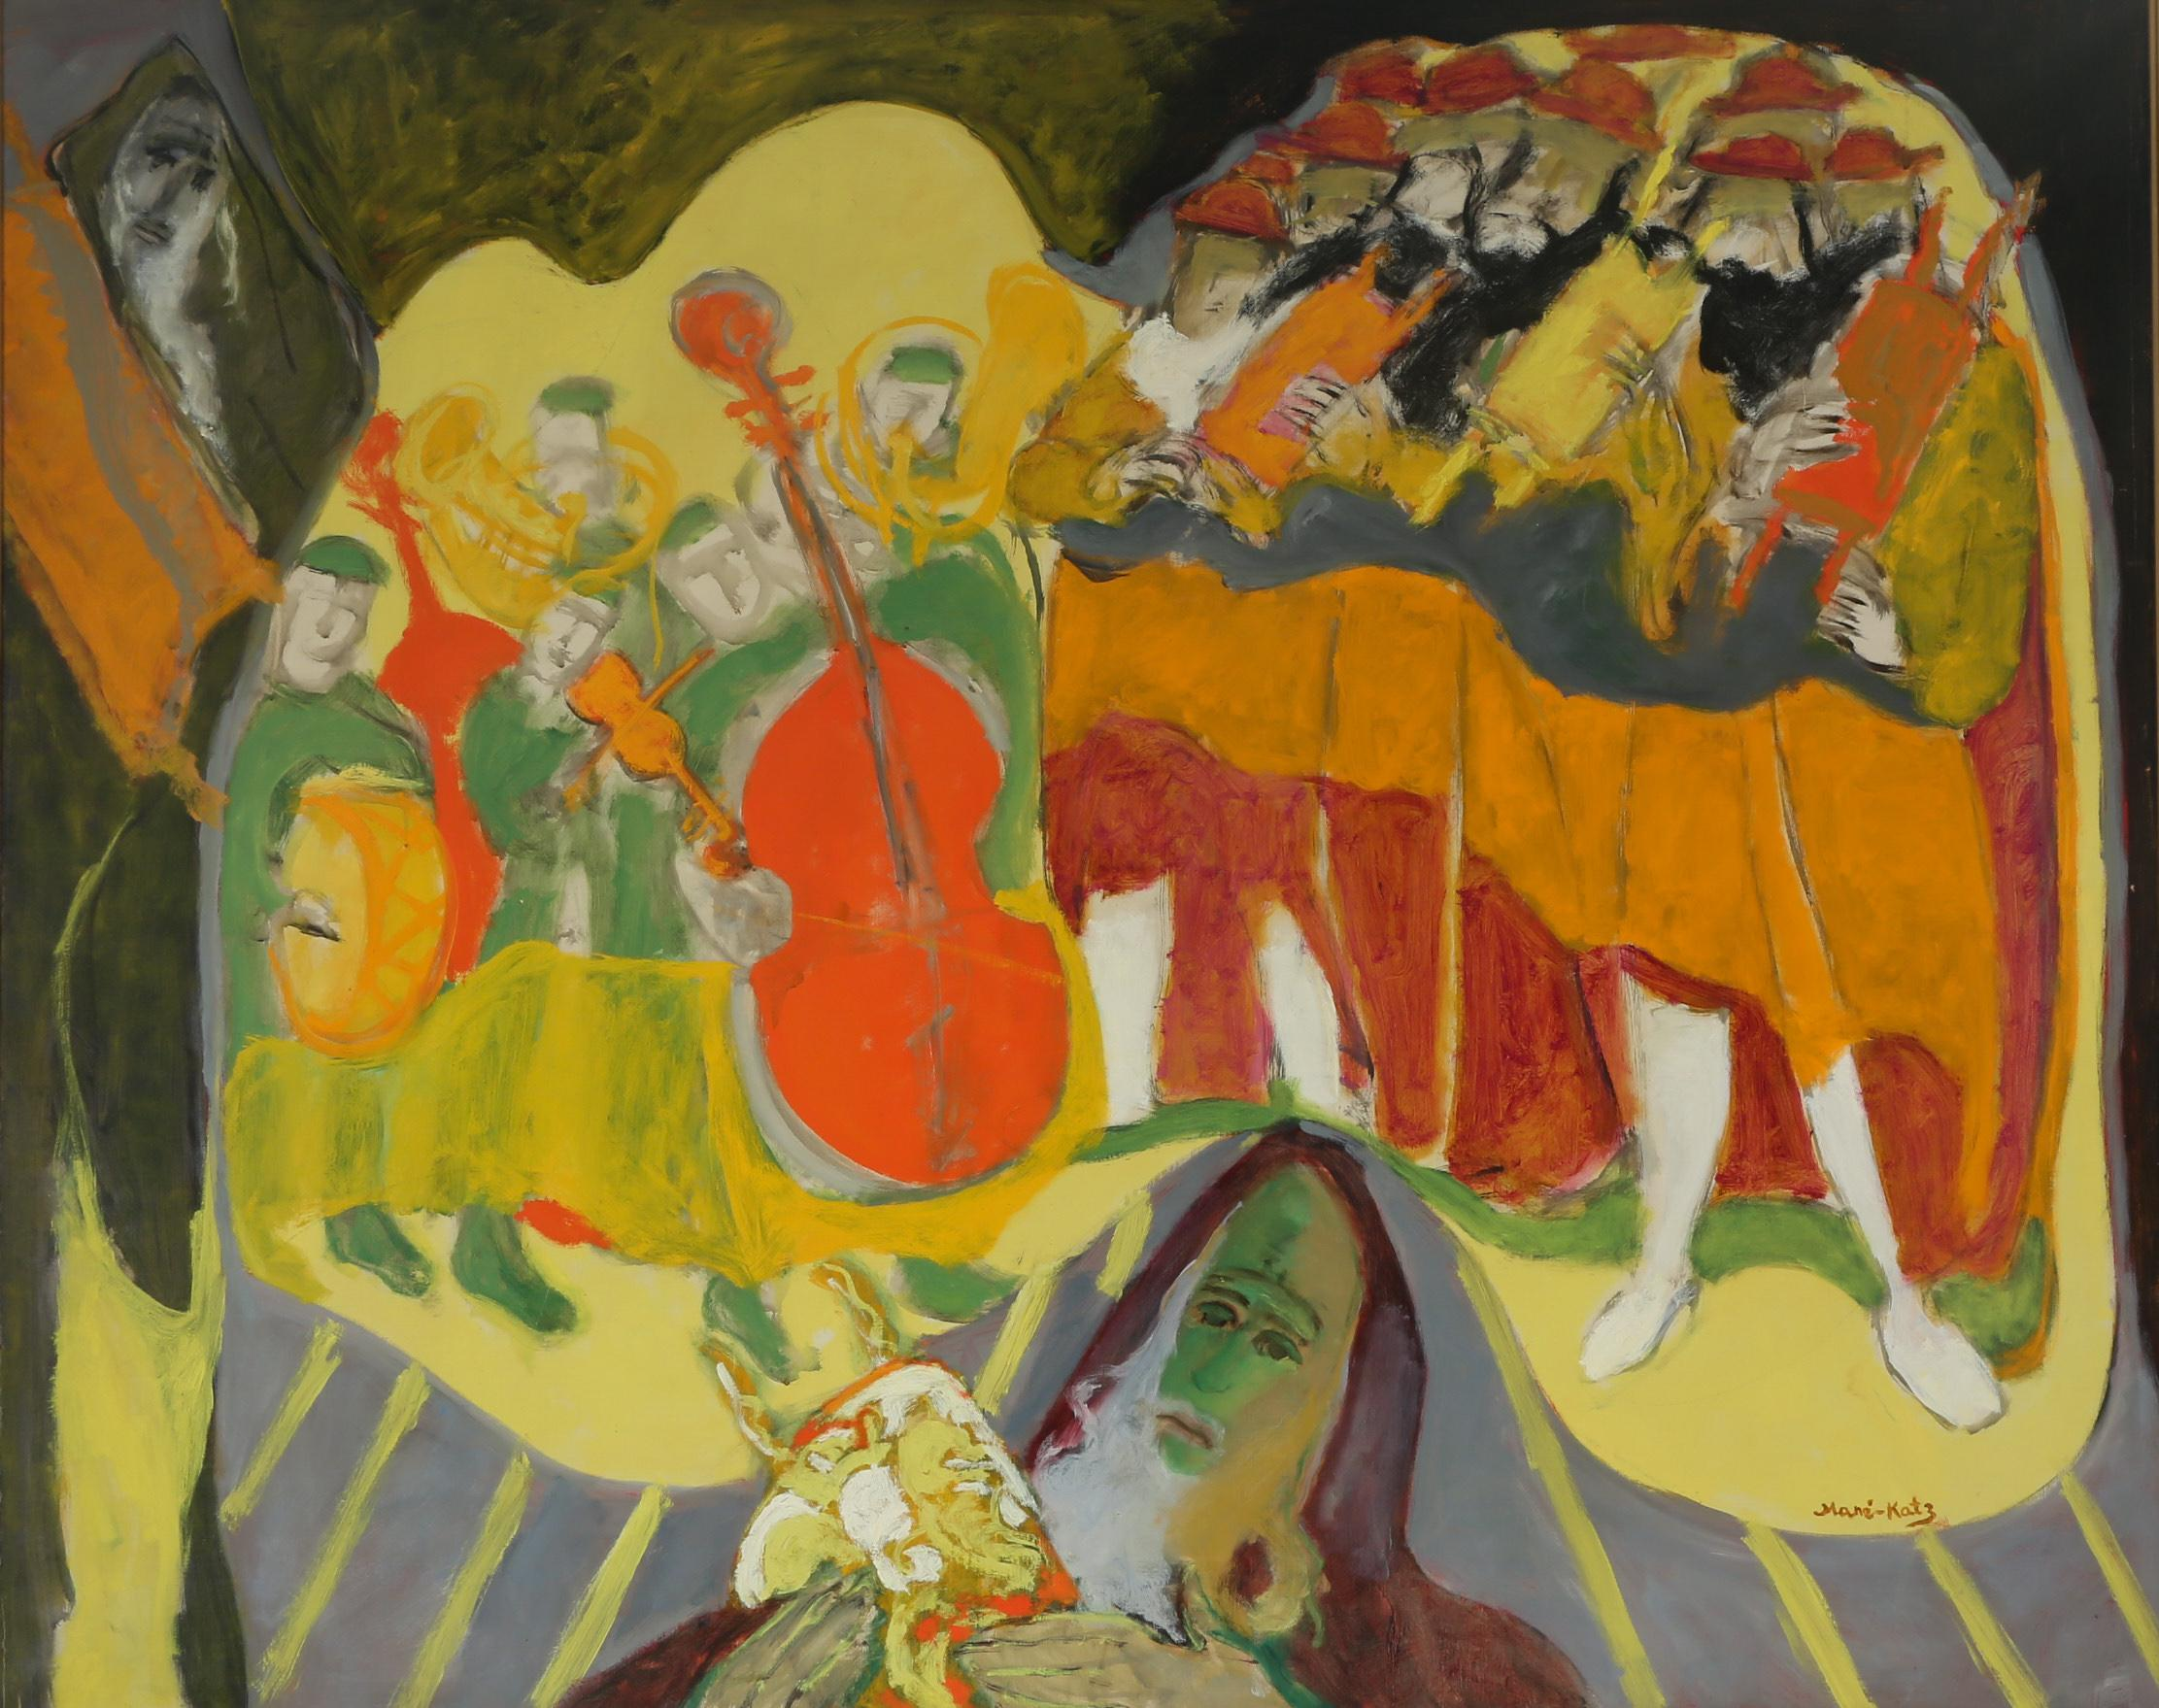 Le Fete, Modern Expressionist Oil on Canvas